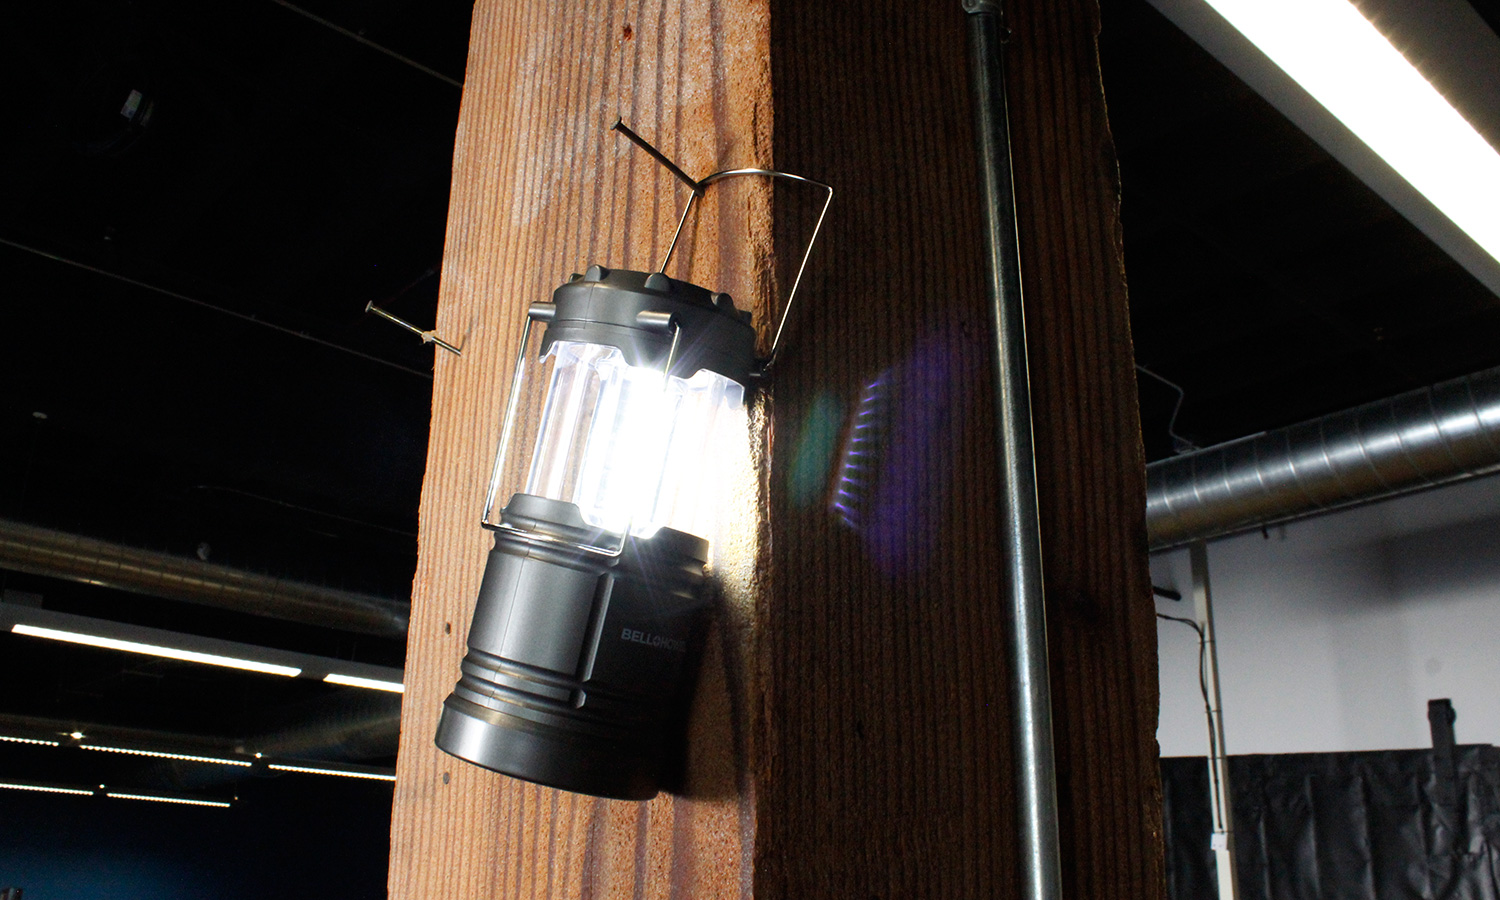 Bell + Howell Tac Light Lantern Review: Surprisingly Mighty